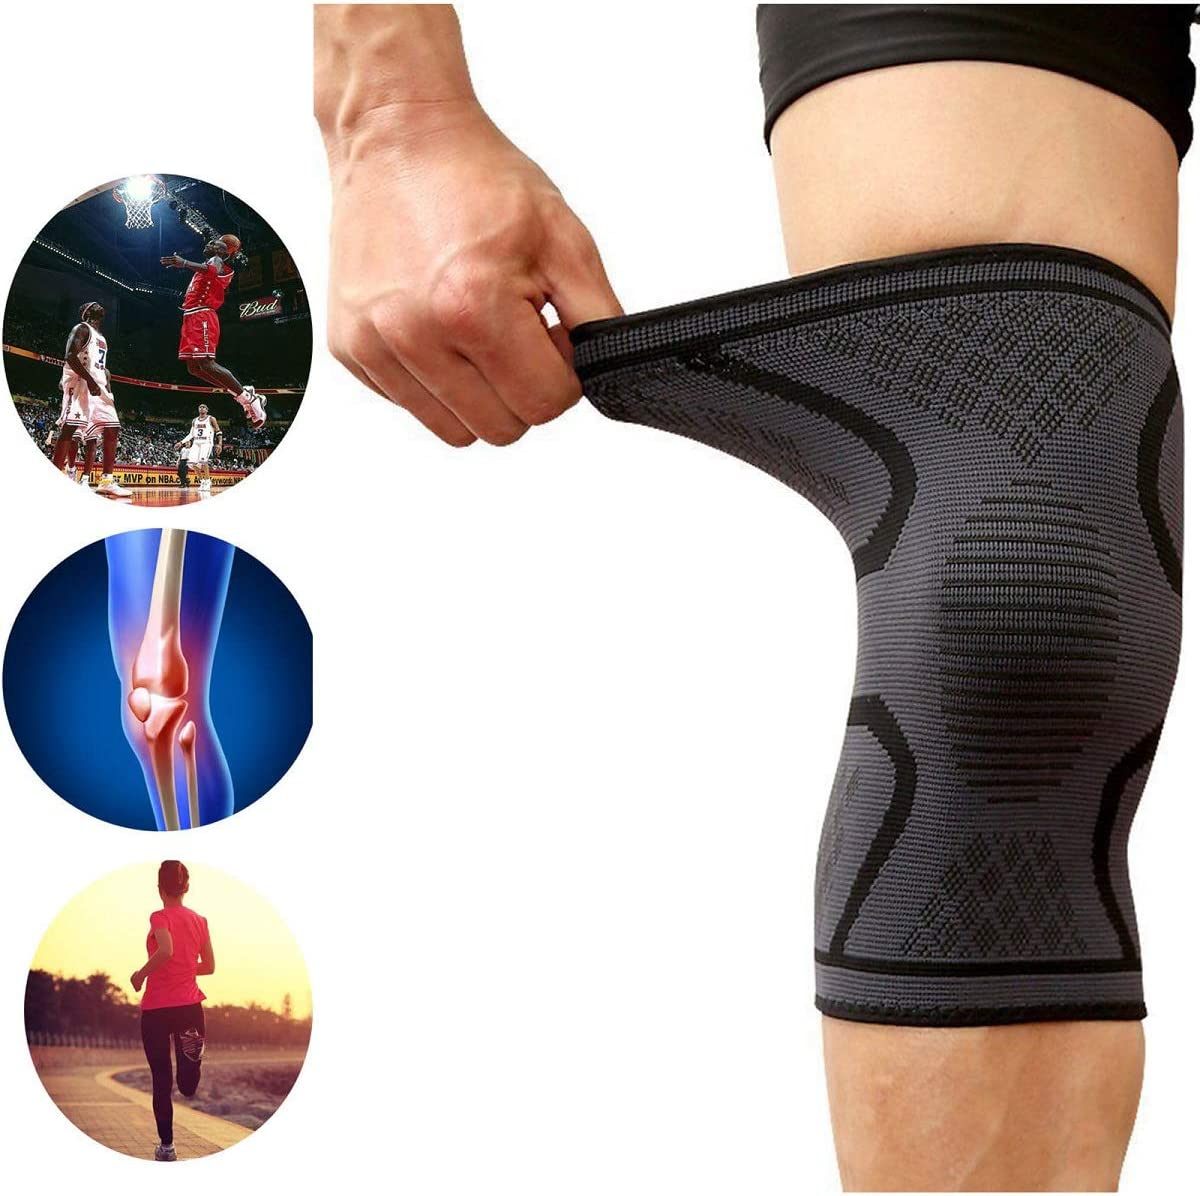 1 Pair Knee Compression Sleeve Support Professional Protective Sports Elastic Knee Pads for Basketball Tennis Cycling Volleyball Football Knee Brace Green M